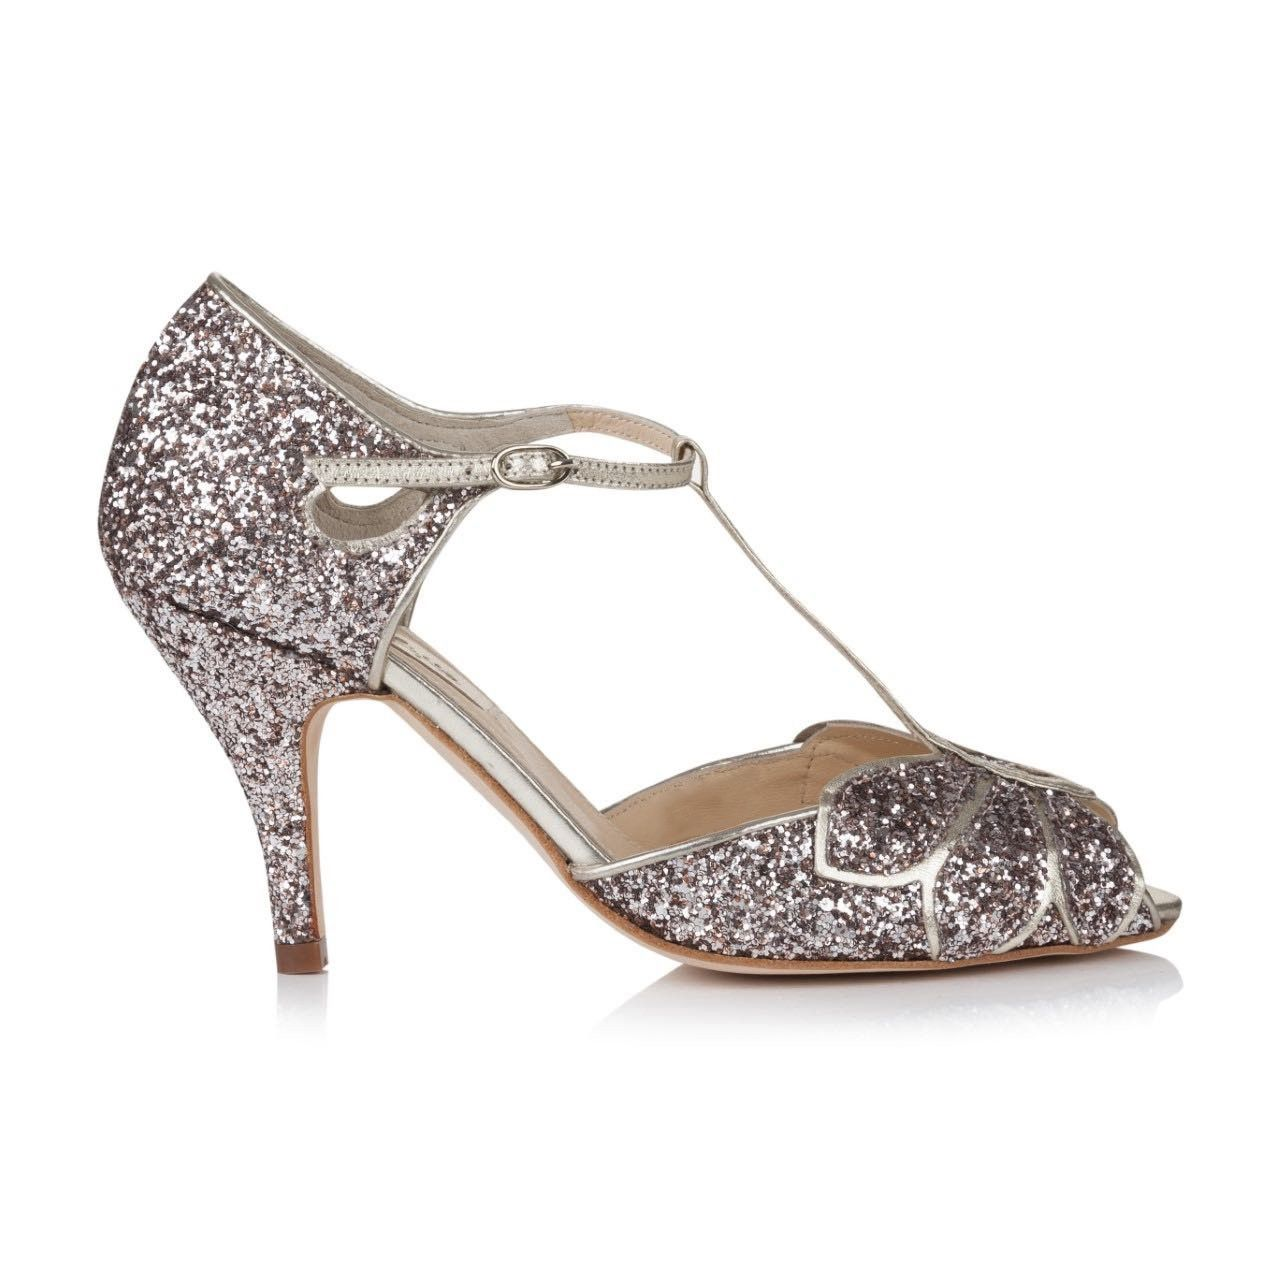 Wide fit wedding shoes, Wedding shoes